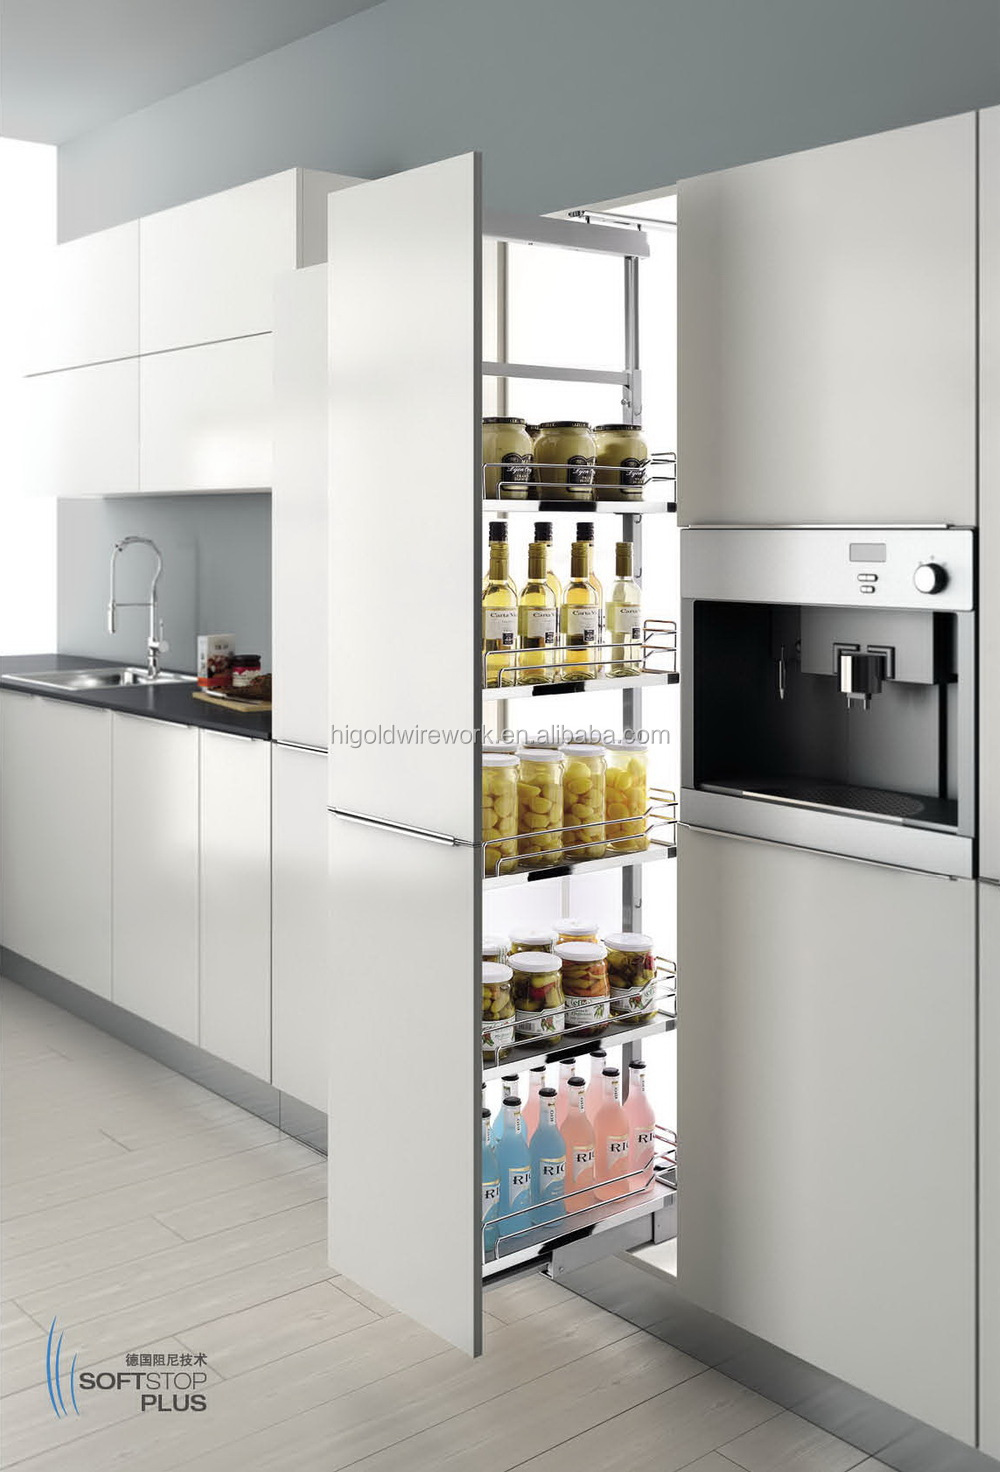 Higold Fashion Kitchen Tall Unit Basket With Wooden Trays